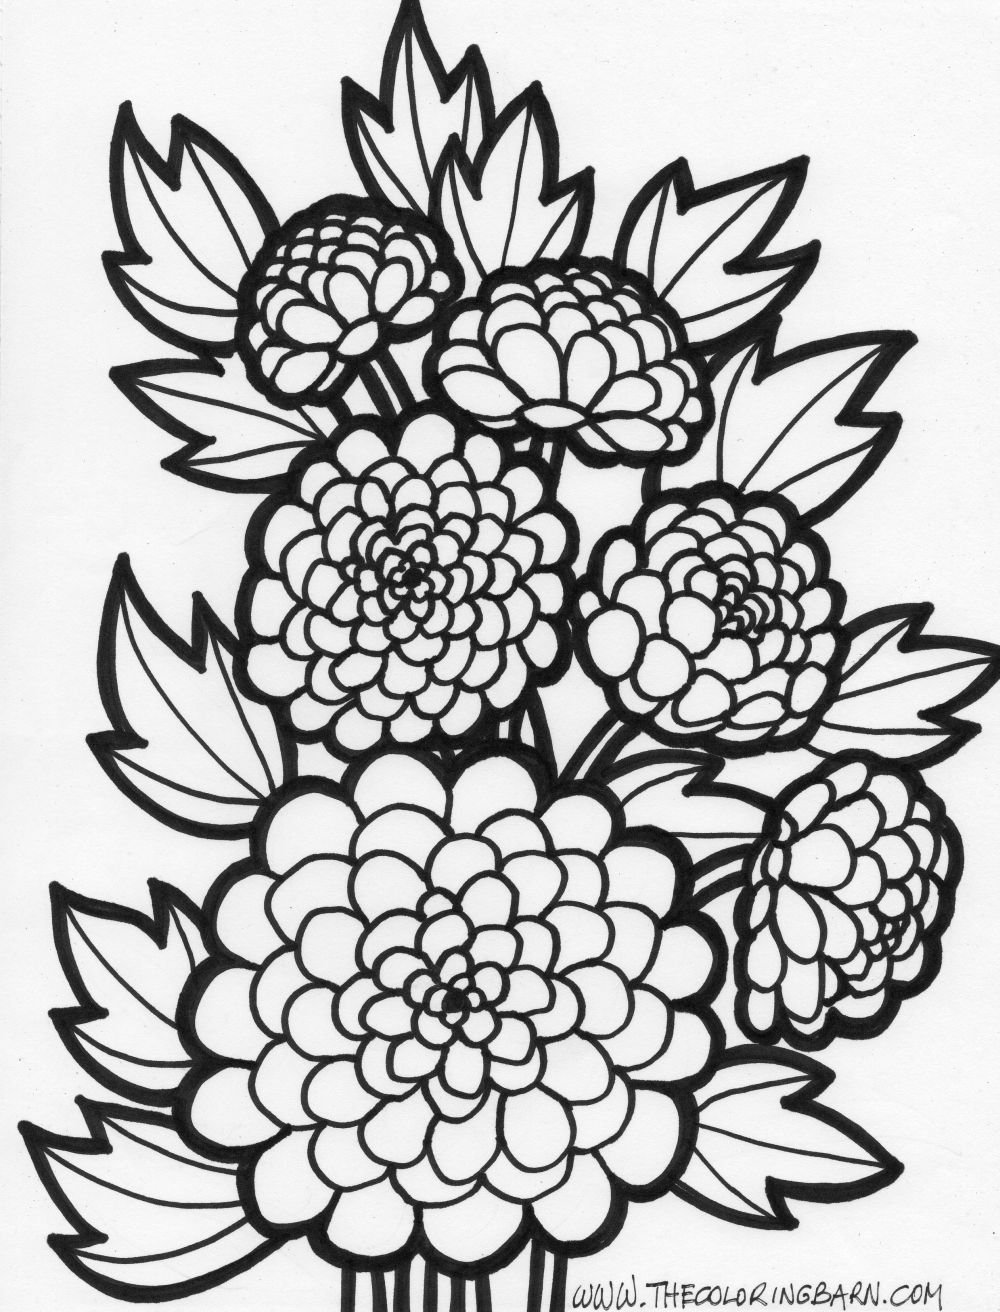 Coloring_Pages_Of_Flowers_For_Teenagers_Difficult_06